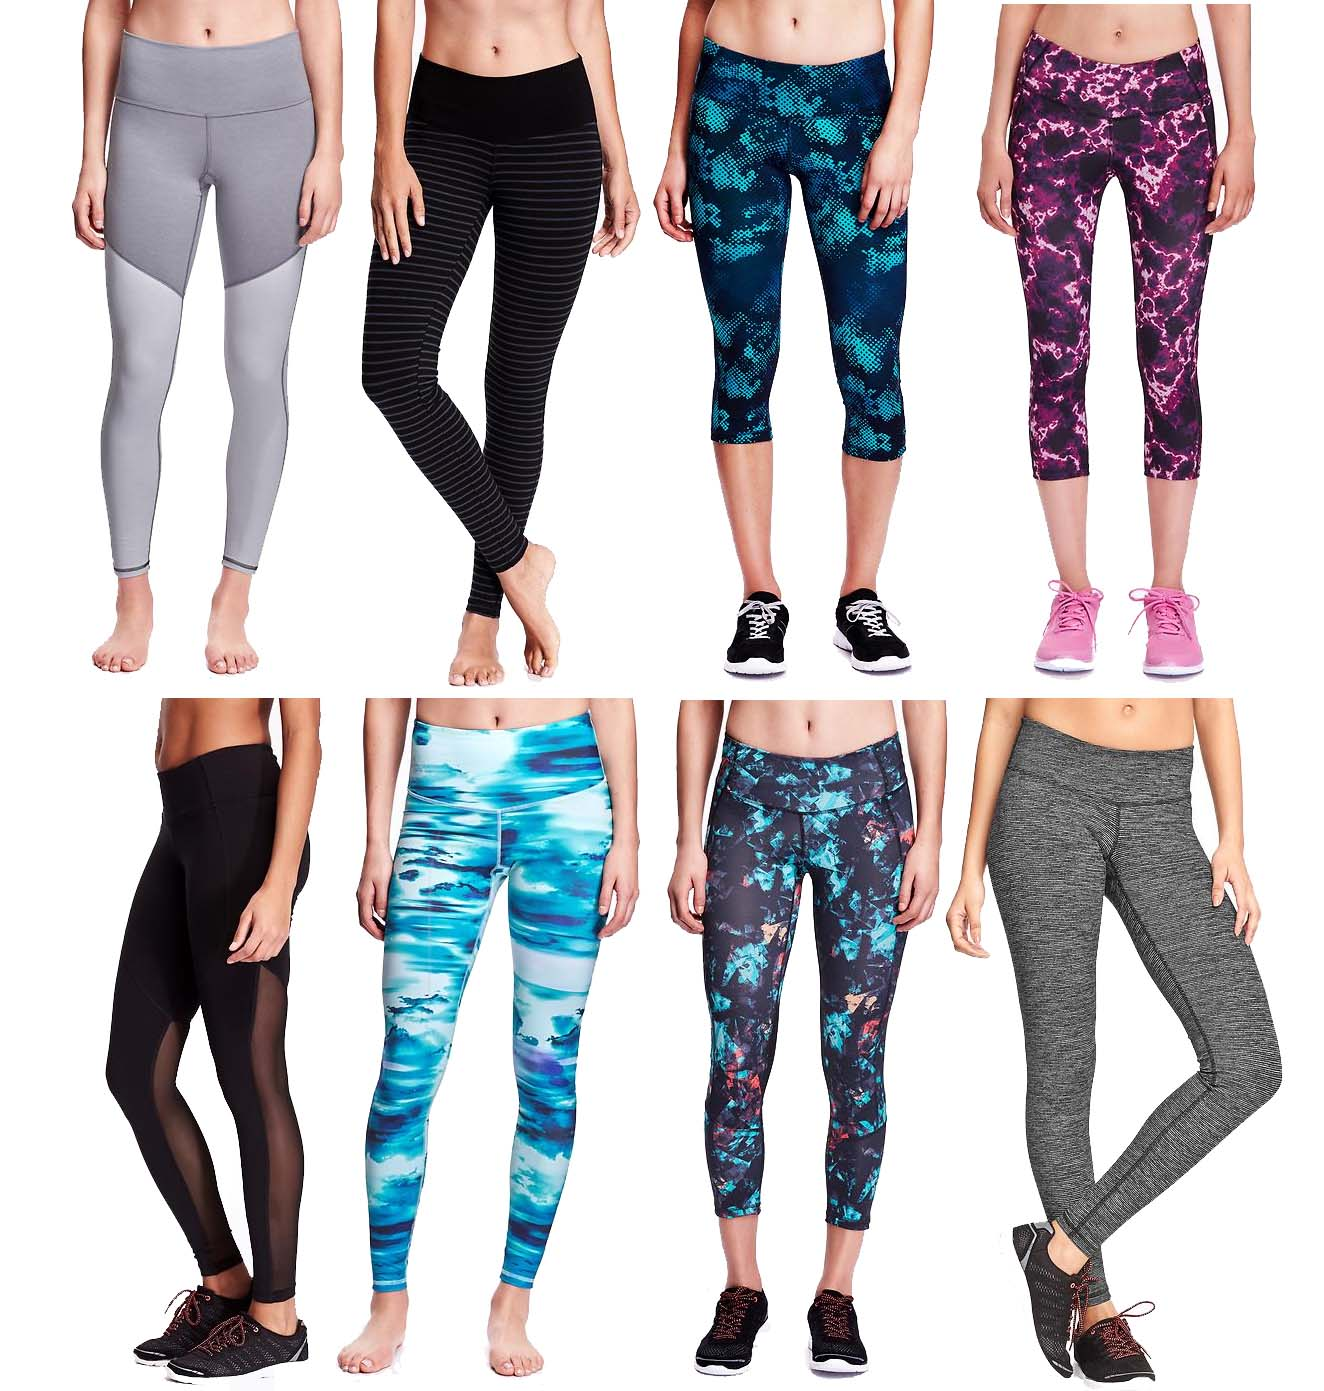 Shop Old Navy's Jersey Leggings for Baby: Elasticized waist with twill-tape tie.,Cuffed leg openings.,Soft, medium-weight jersey.,Colors and patterns vary.